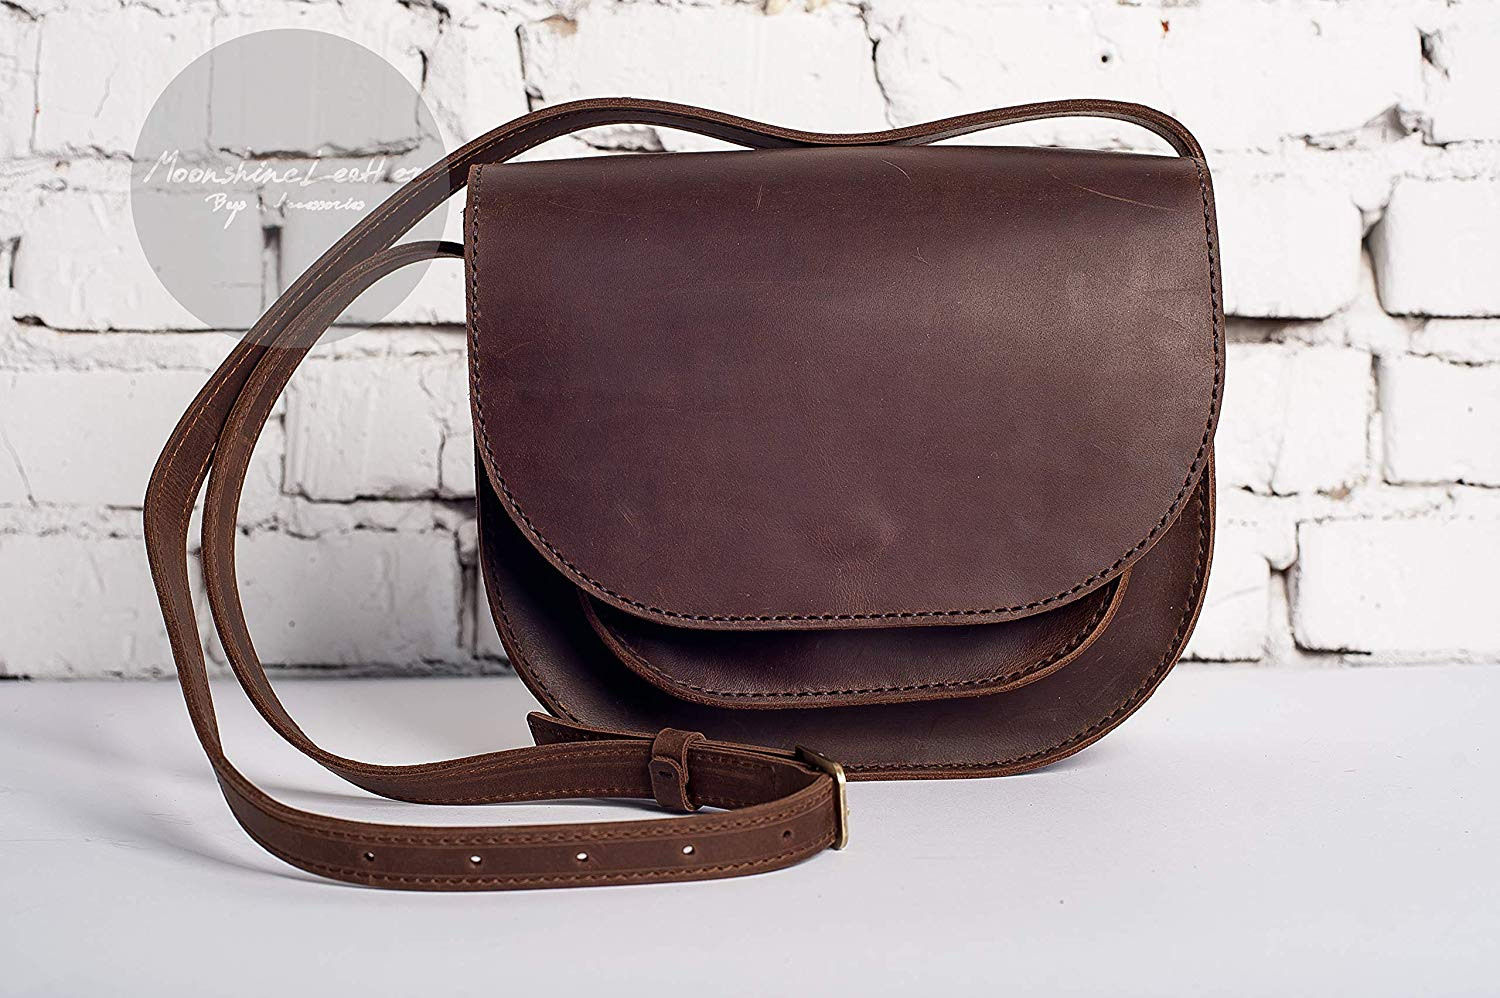 Brown crossbody bag, womens leather bag, leather handbag, leather crossbody bag, leather shoulder bag, leather handbag, cross body bag, leather saddle bag